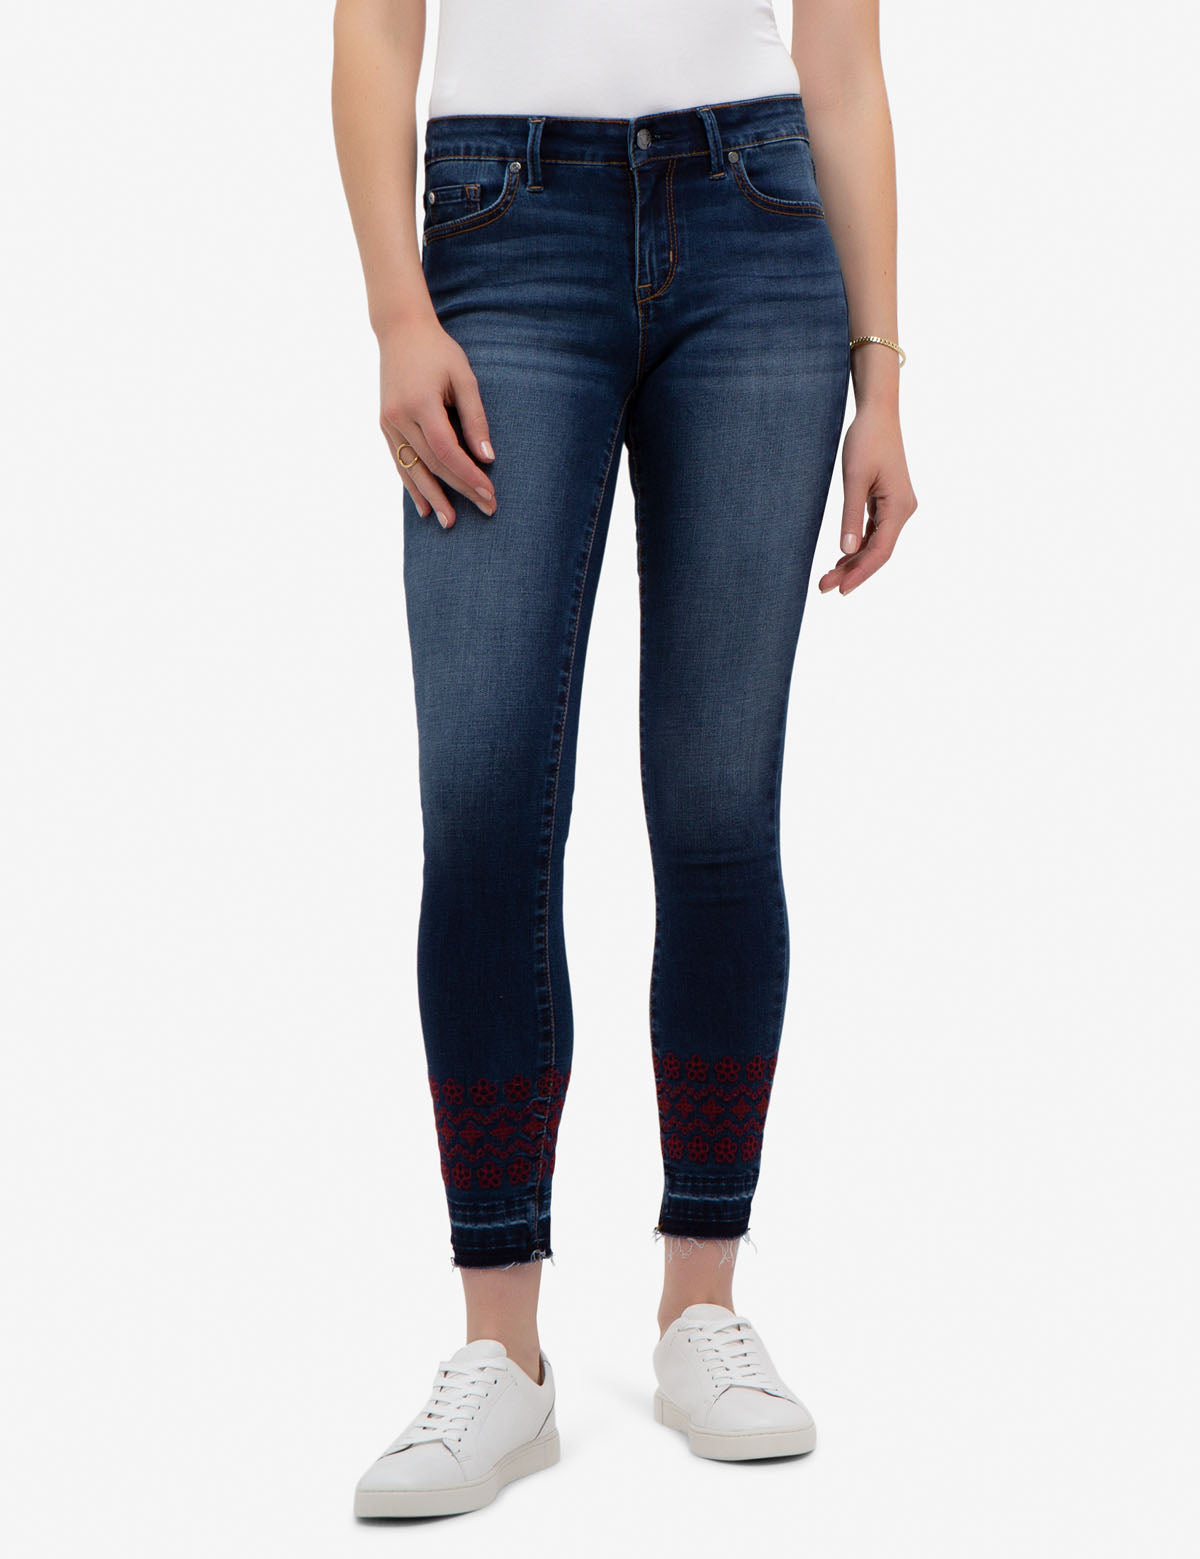 REPREVE® MID RISE SKINNY EMBROIDERED JEANS - U.S. Polo Assn.